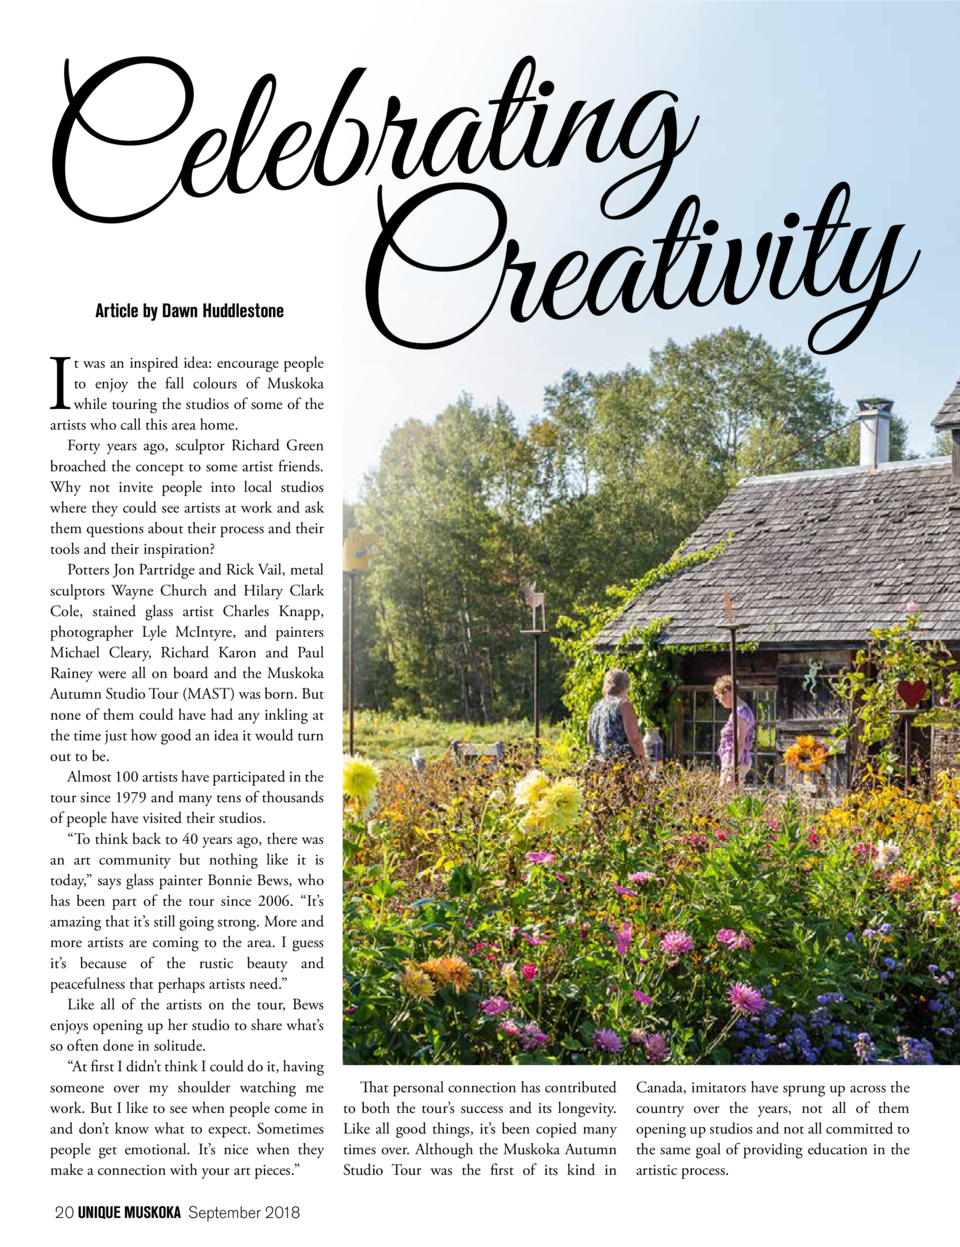 g n i t a r b e l e C y t i v i t a e r C I Article by Dawn Huddlestone  t was an inspired idea  encourage people to enjoy...